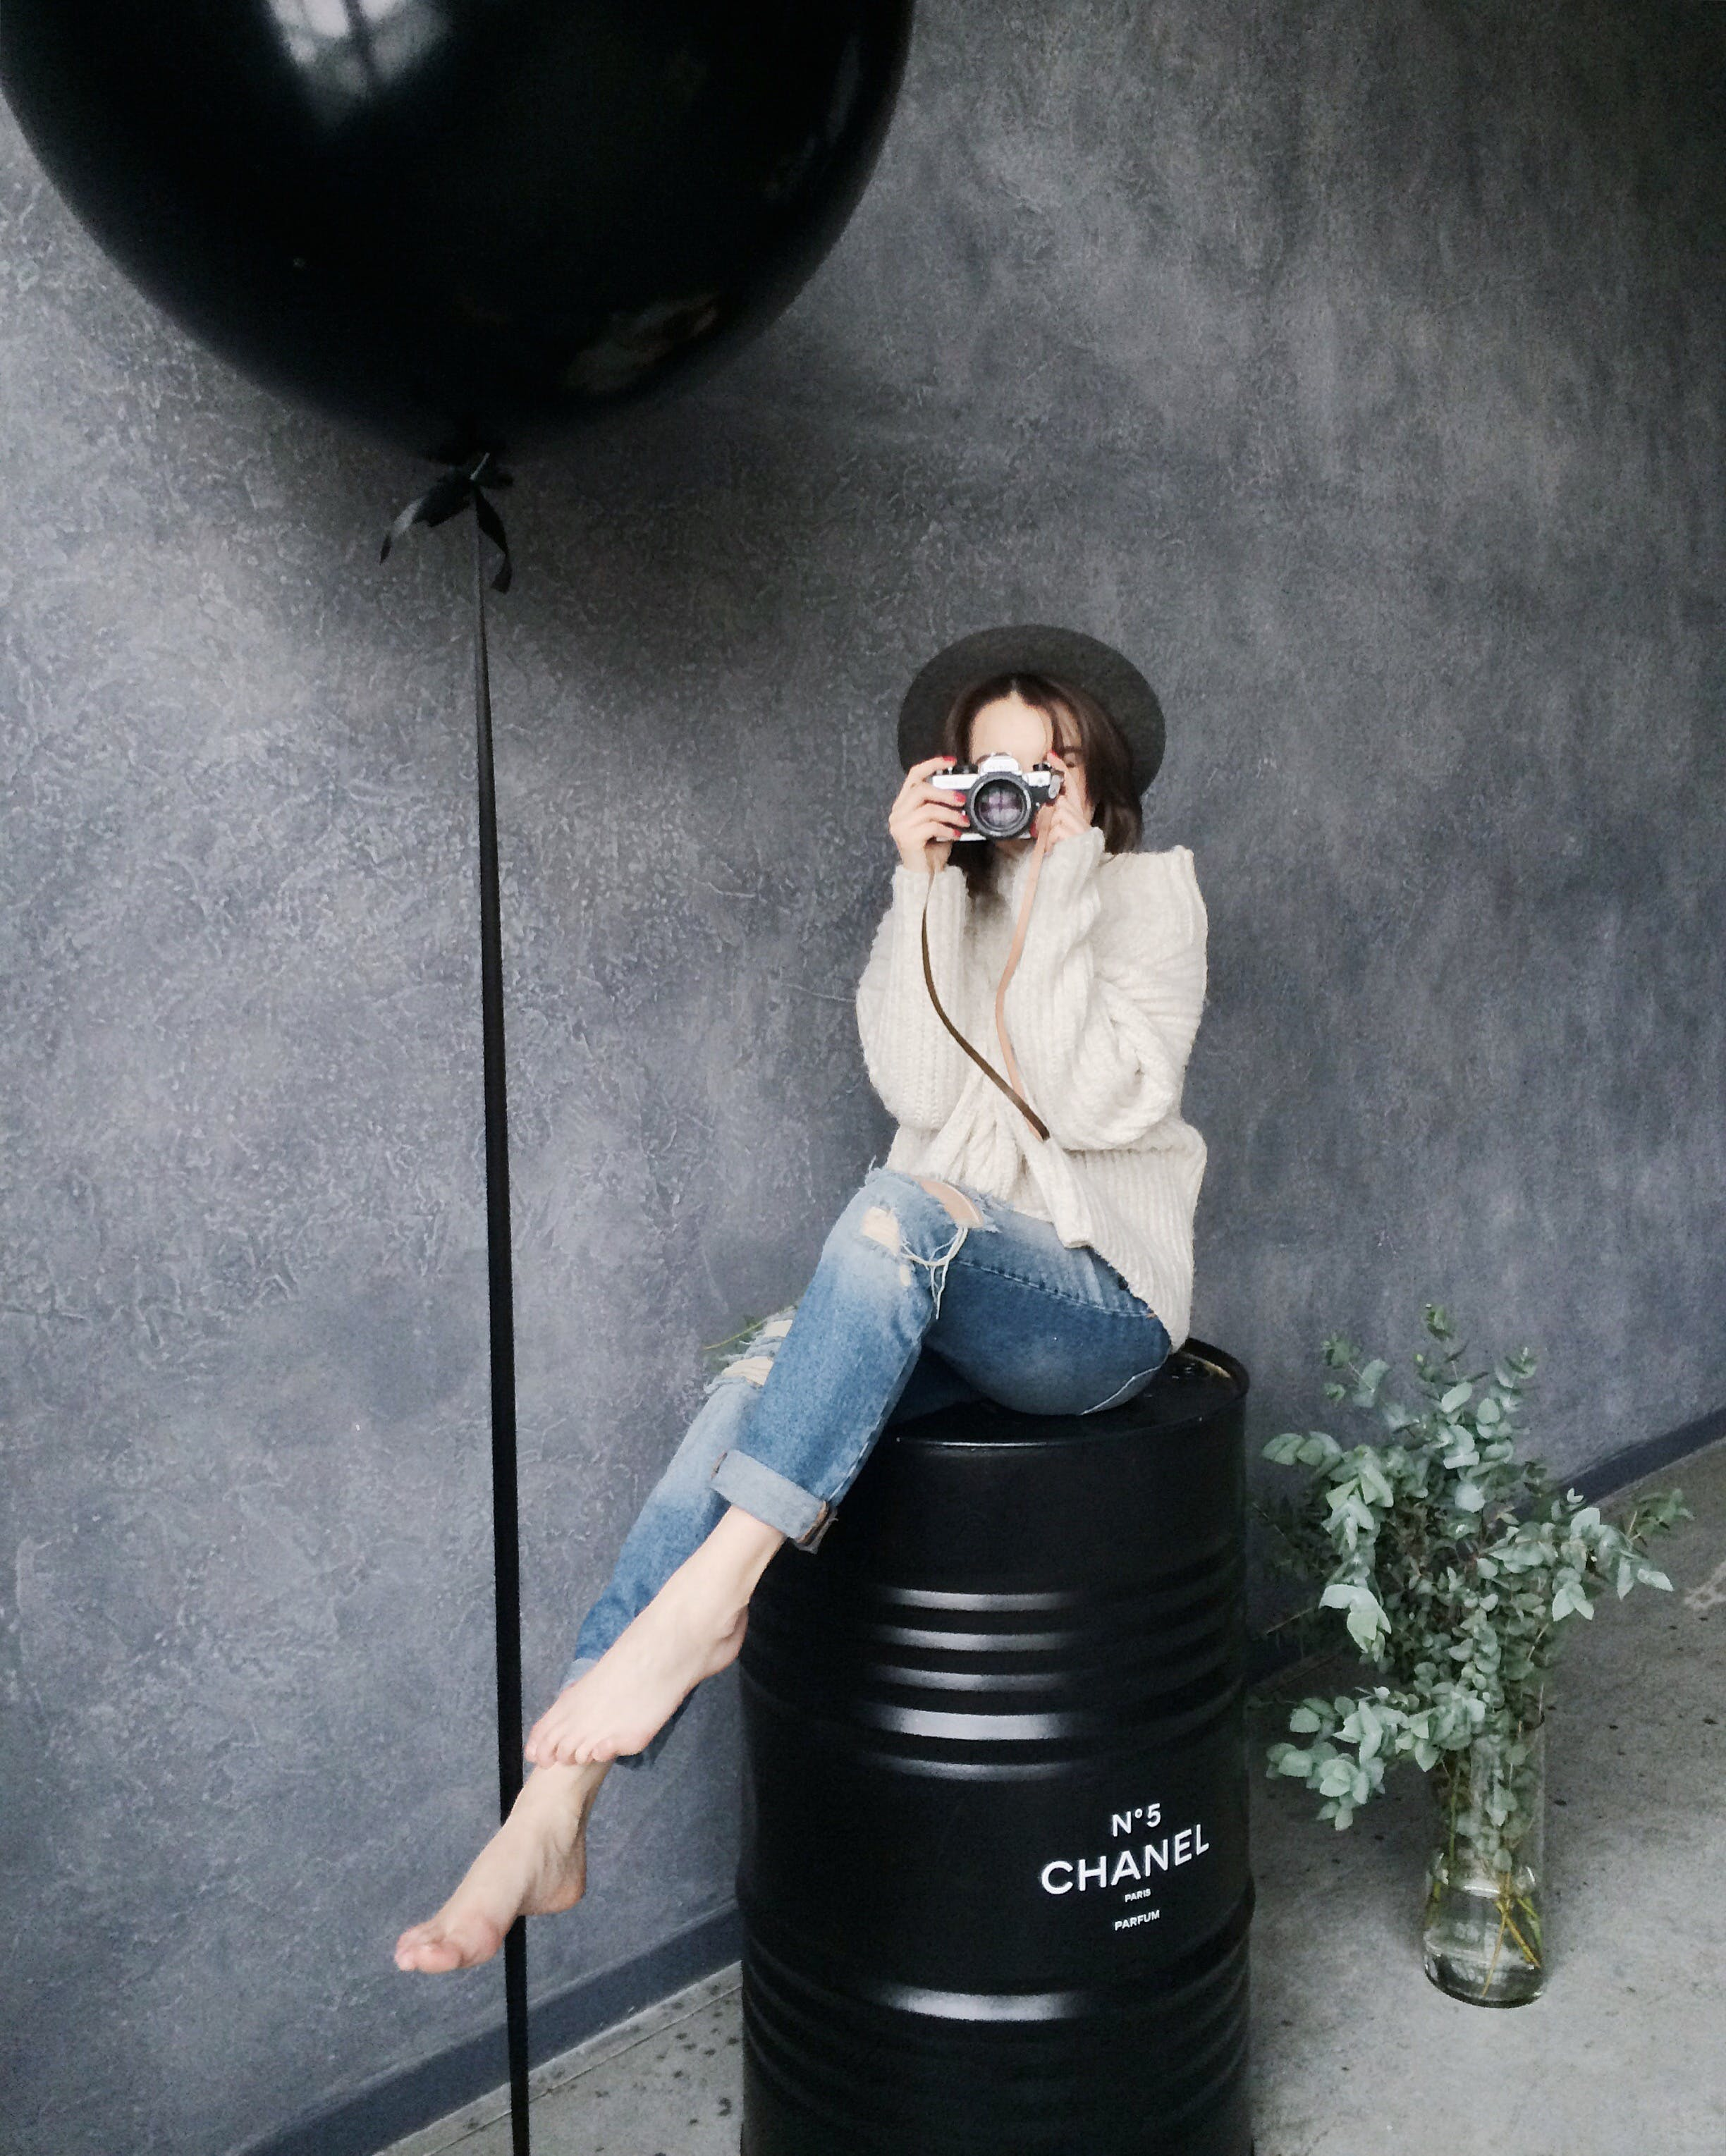 Woman Using Silver Camera Sitting on Black Container Drum